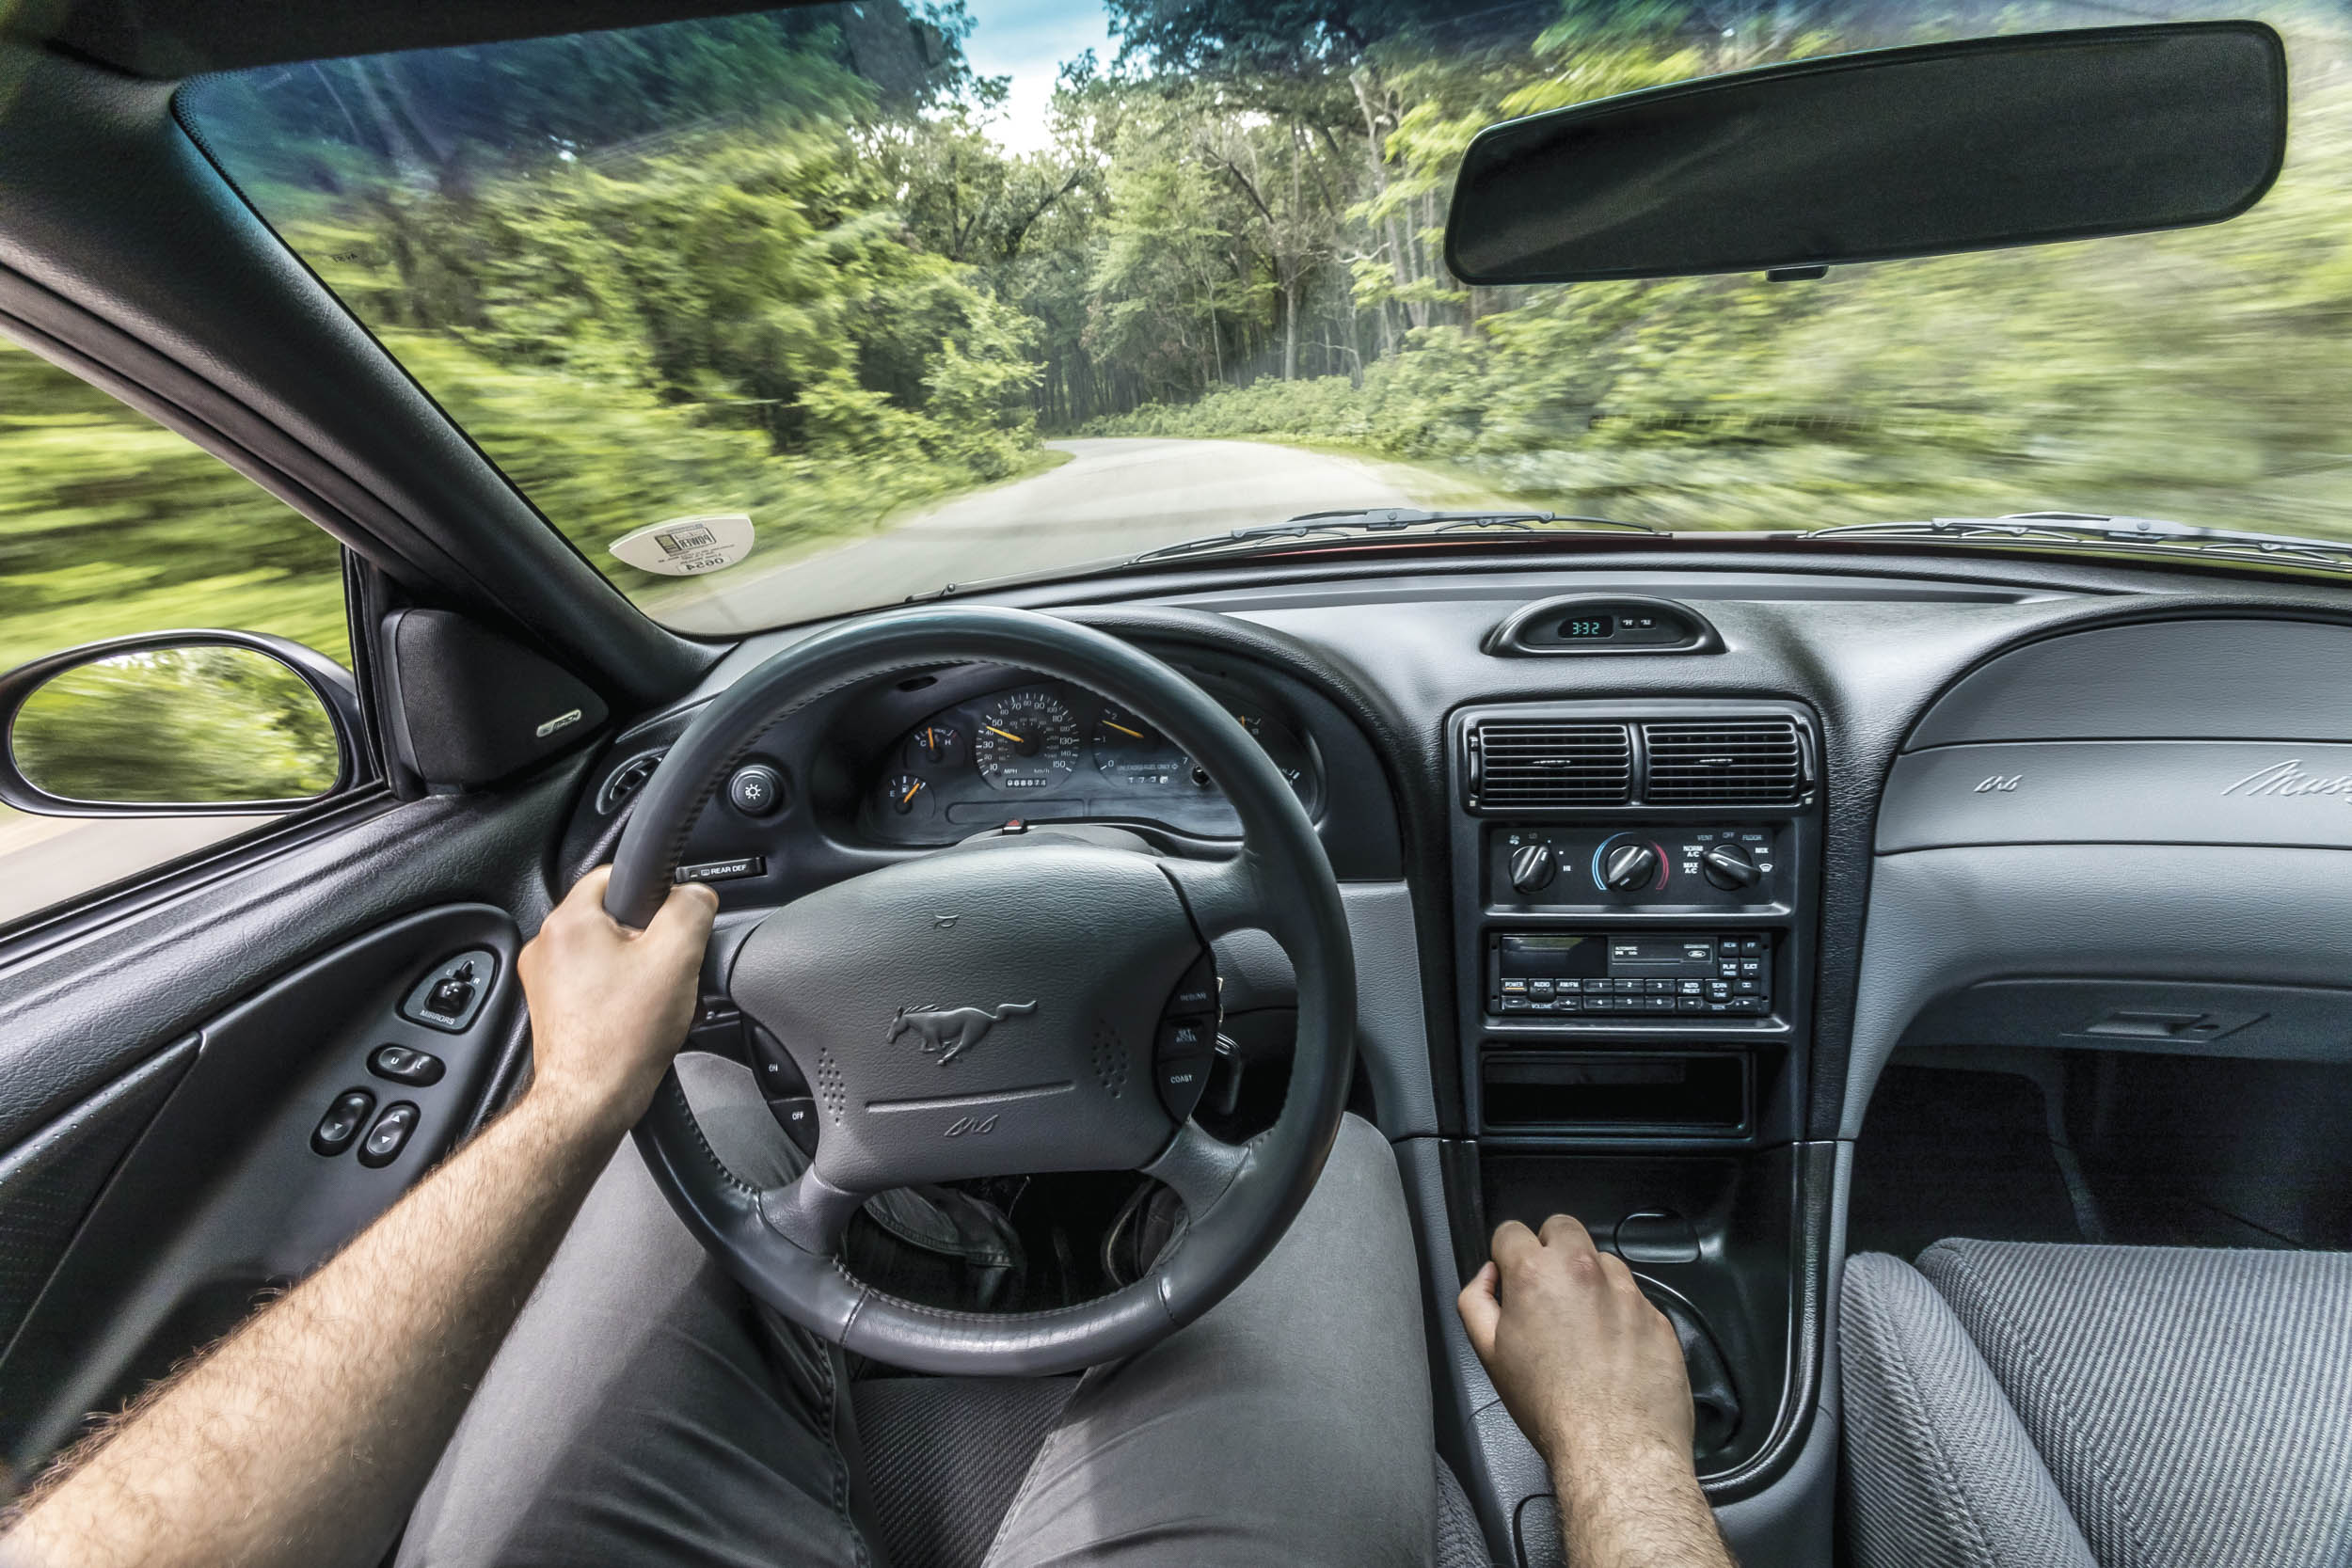 The Mustang makes its 285 pound-feet of torque at 3400 rpm, and keeping the V-8 in that sweet spot is easy with the solid fivespeed. The pedals even allow heeland- toe shifting.